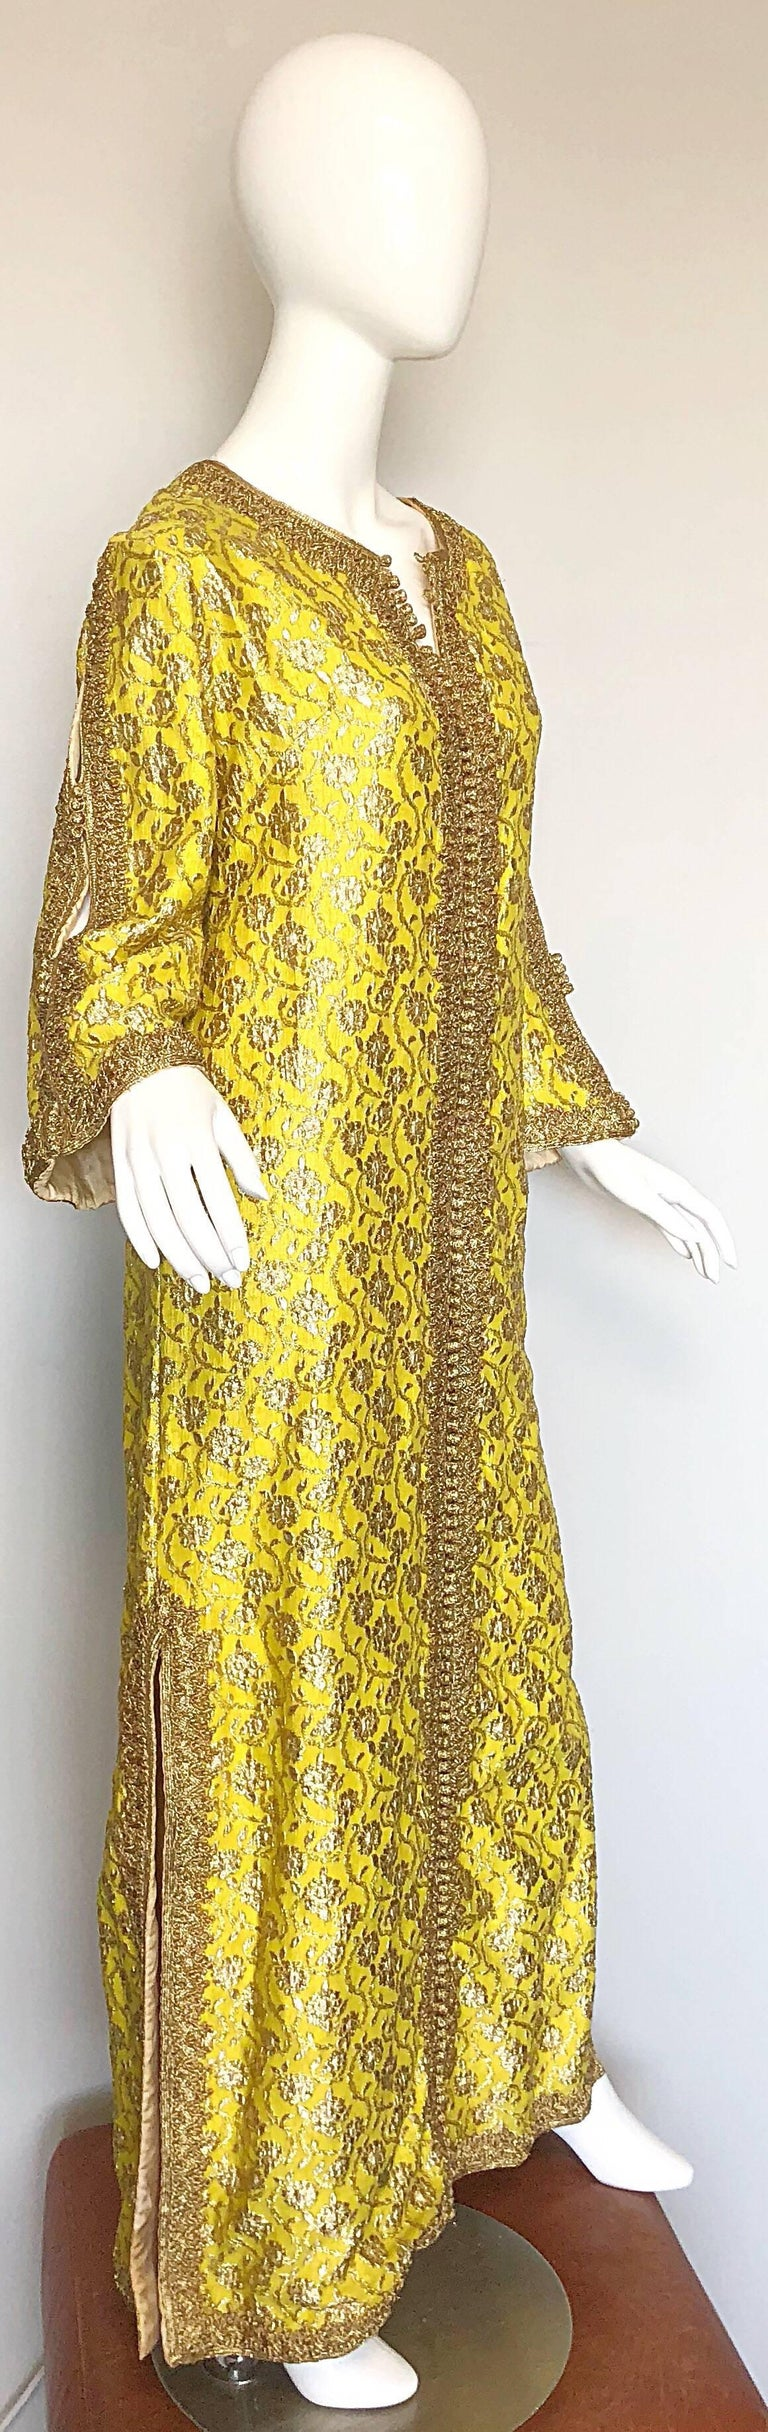 Amazing 1960s Moroccan Couture Silk Brocade Yellow + Gold Caftan 60s Maxi Dress For Sale 1